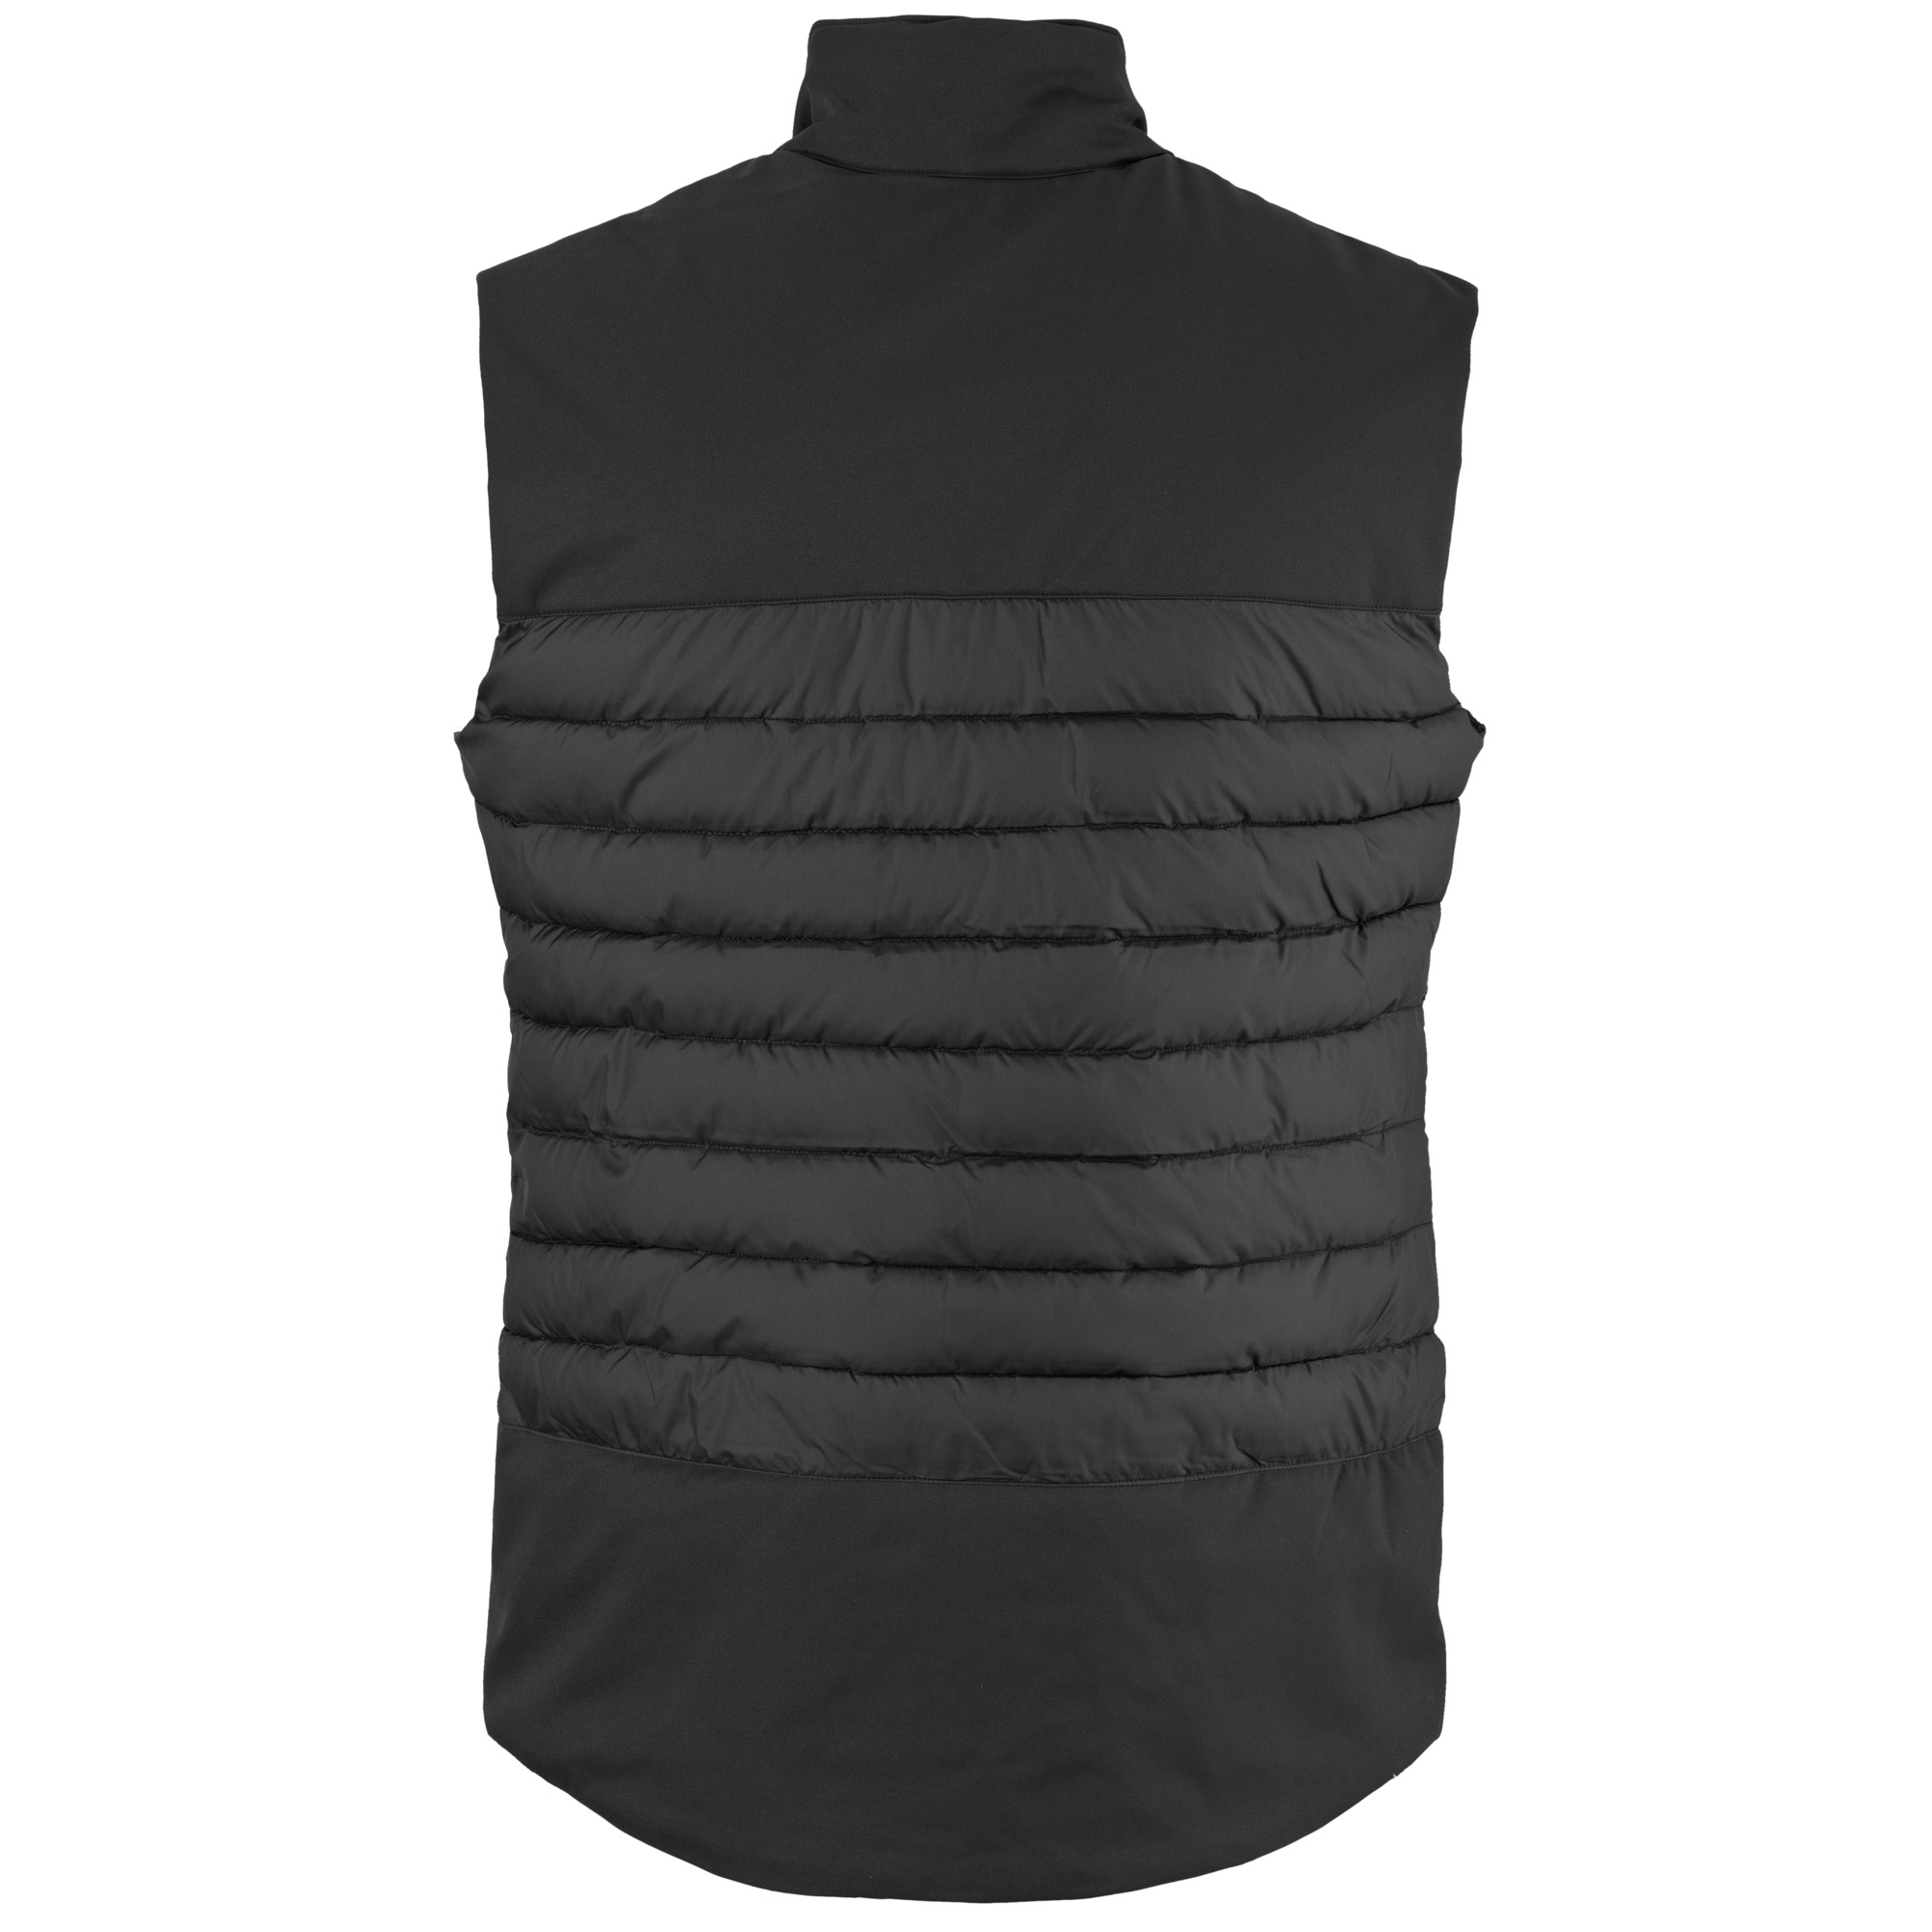 SCOTT Insuloft Explorair Down Vest